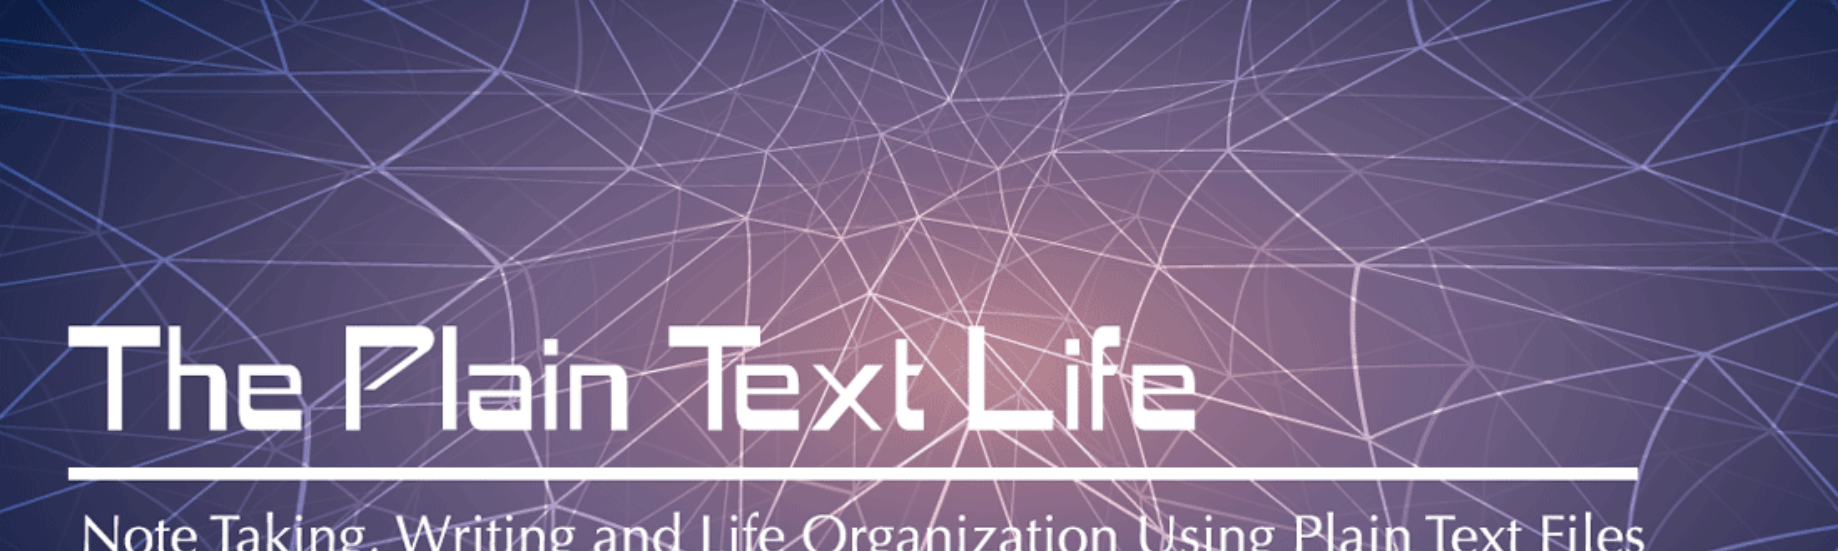 The Plain Text Life Note Taking Writing And Life Organization Using Plain Text Files Mark Koester